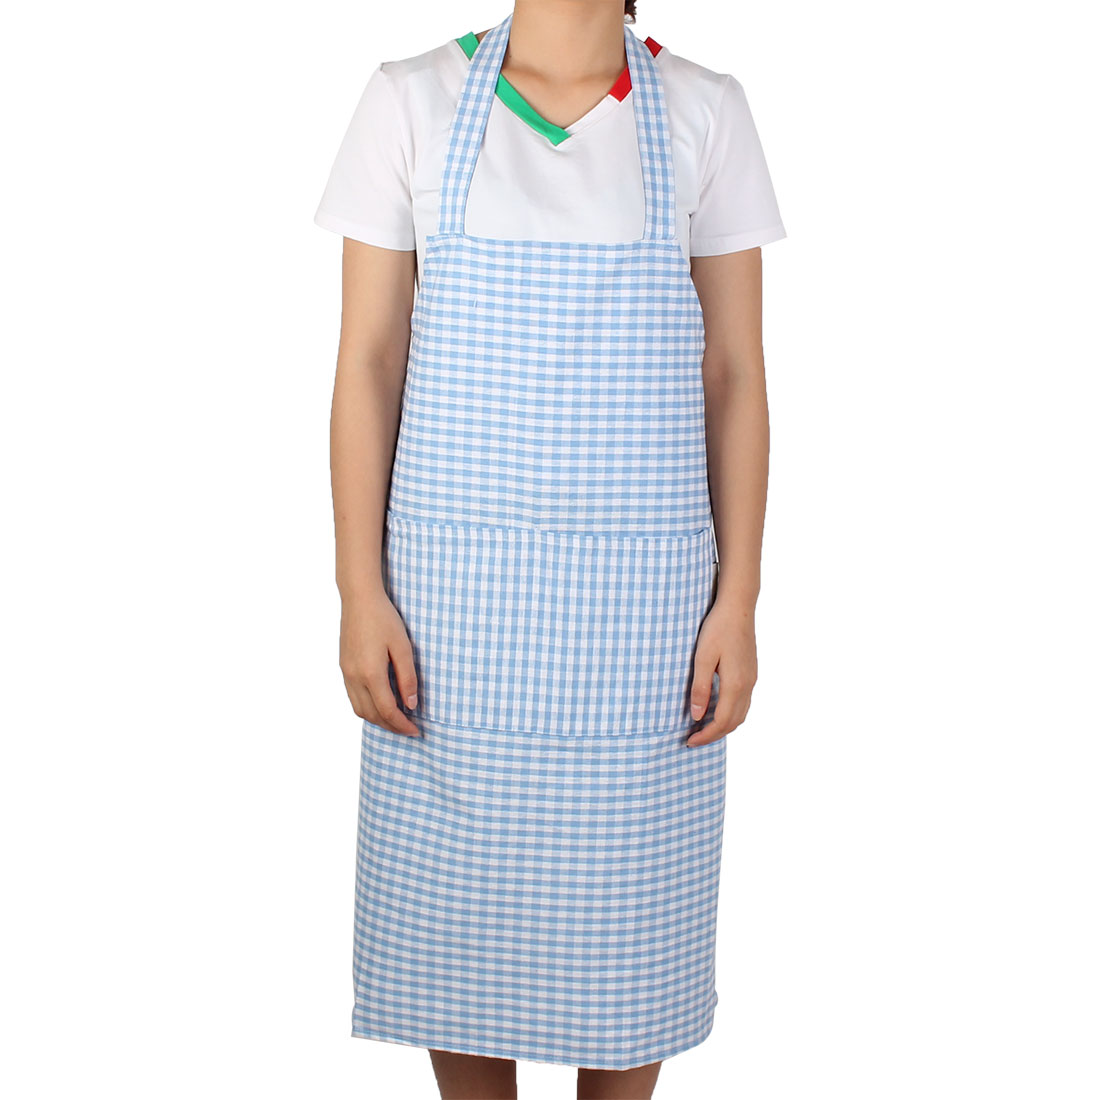 Lady Single Front Pocket Plaid Pattern Cooking Working Apron Pinafore Light Blue